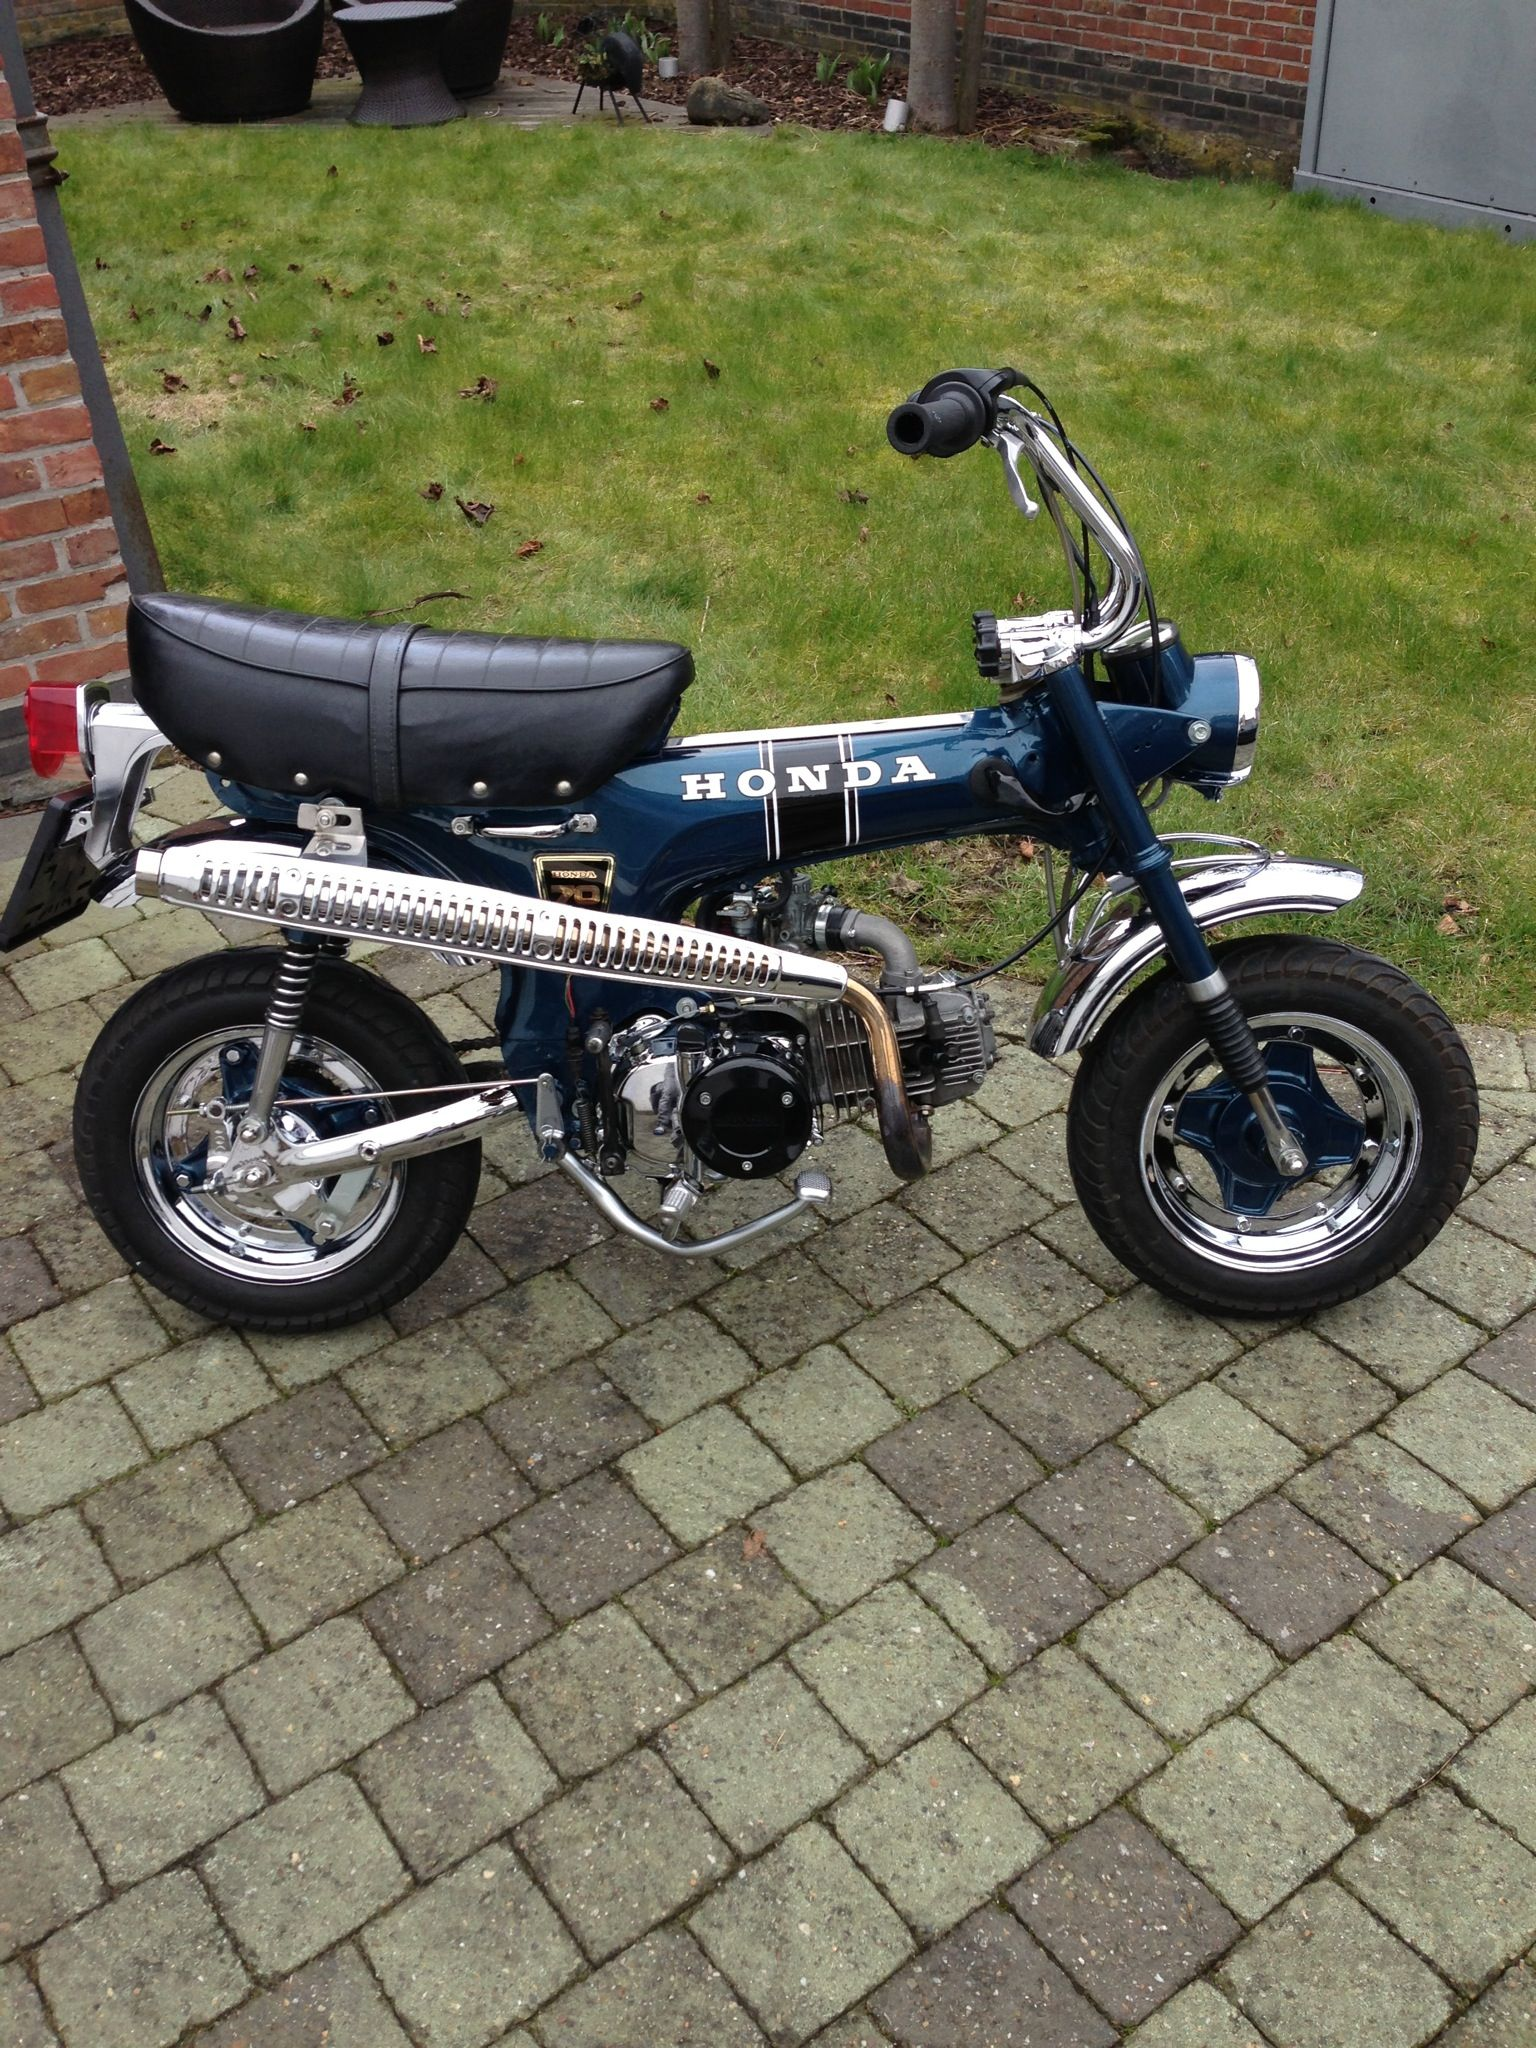 honda dax st 70 chromed nice engine made in england 39 72 mini bikes pinterest beautiful. Black Bedroom Furniture Sets. Home Design Ideas